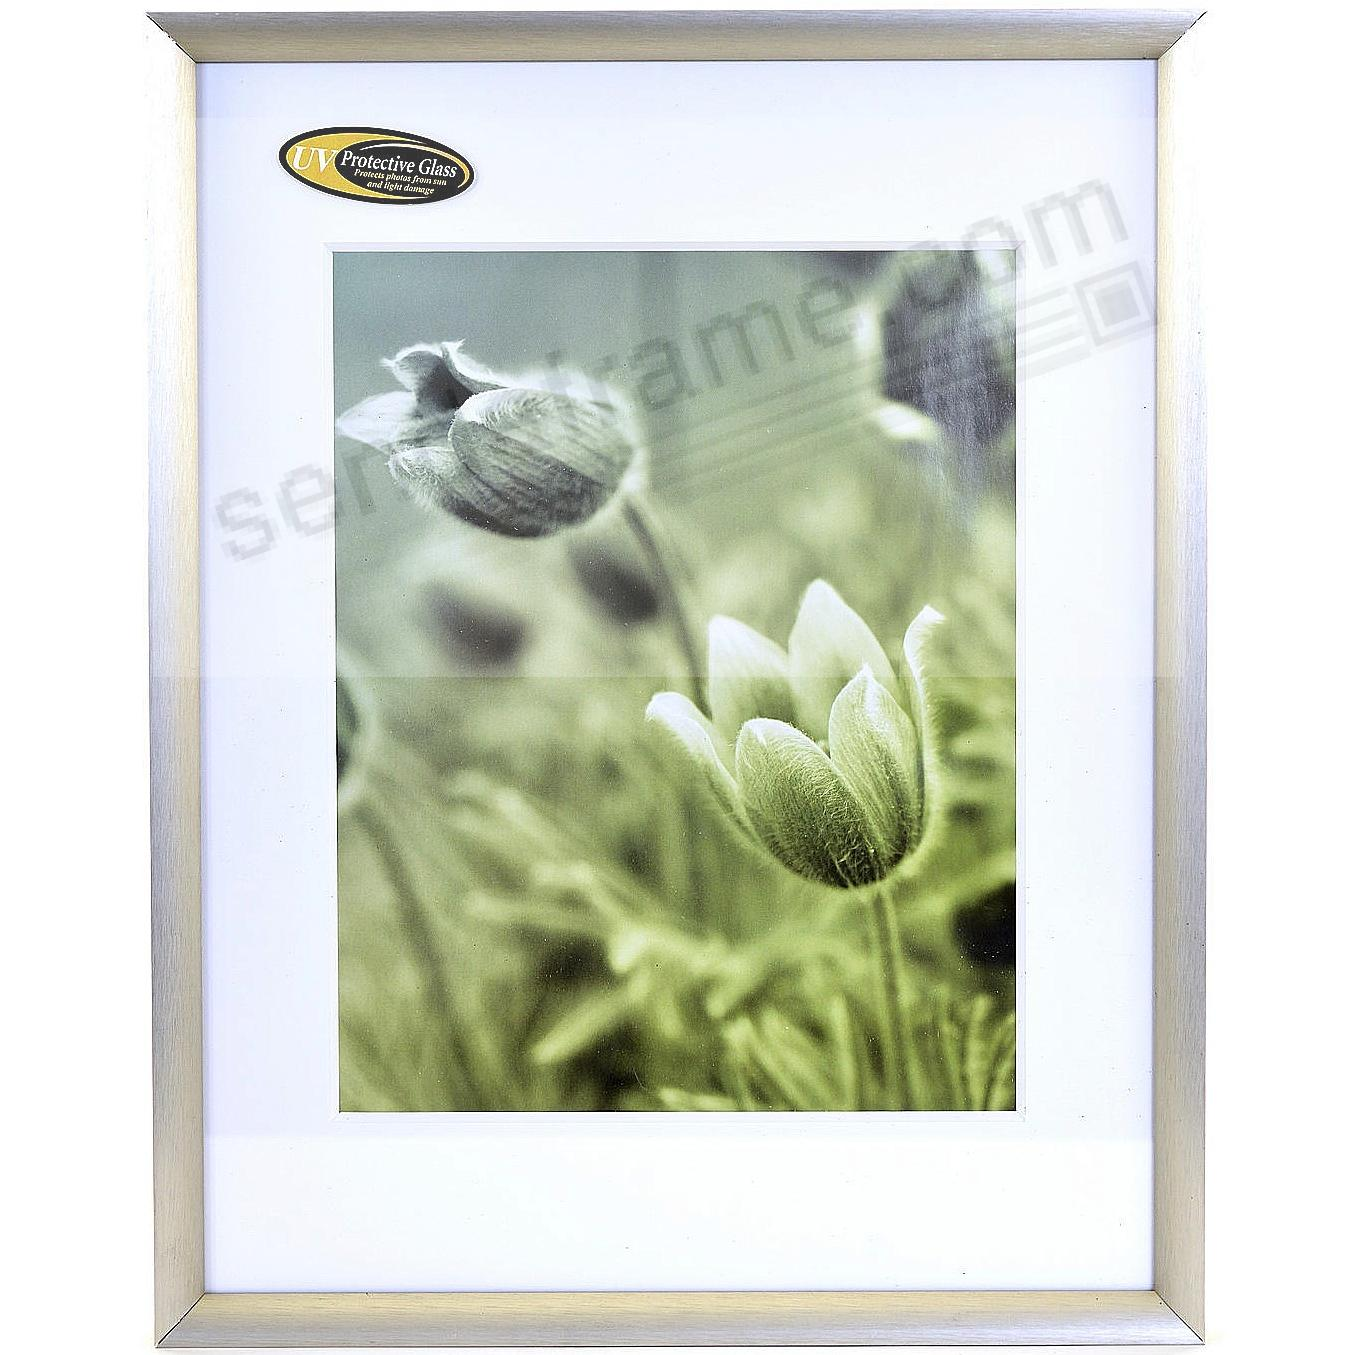 Satin German Silver COSMOPOLITAN matted metallic frame 16x20/11x14 from ARTCARE® by Nielsen®